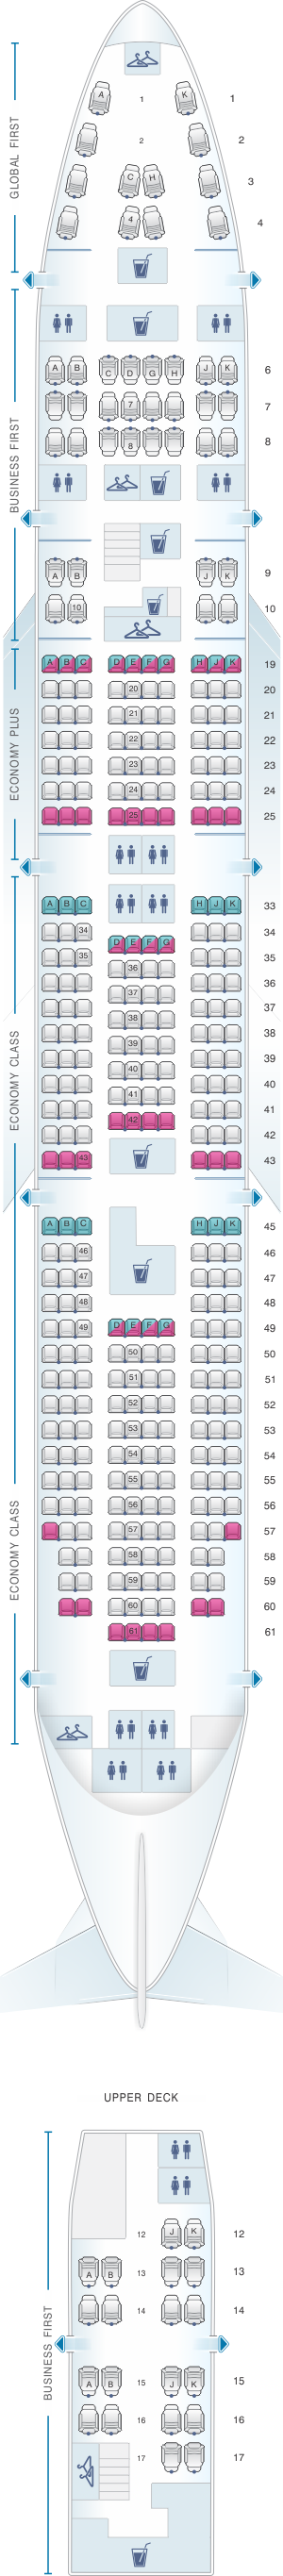 Seat map for United Airlines Boeing B747 400